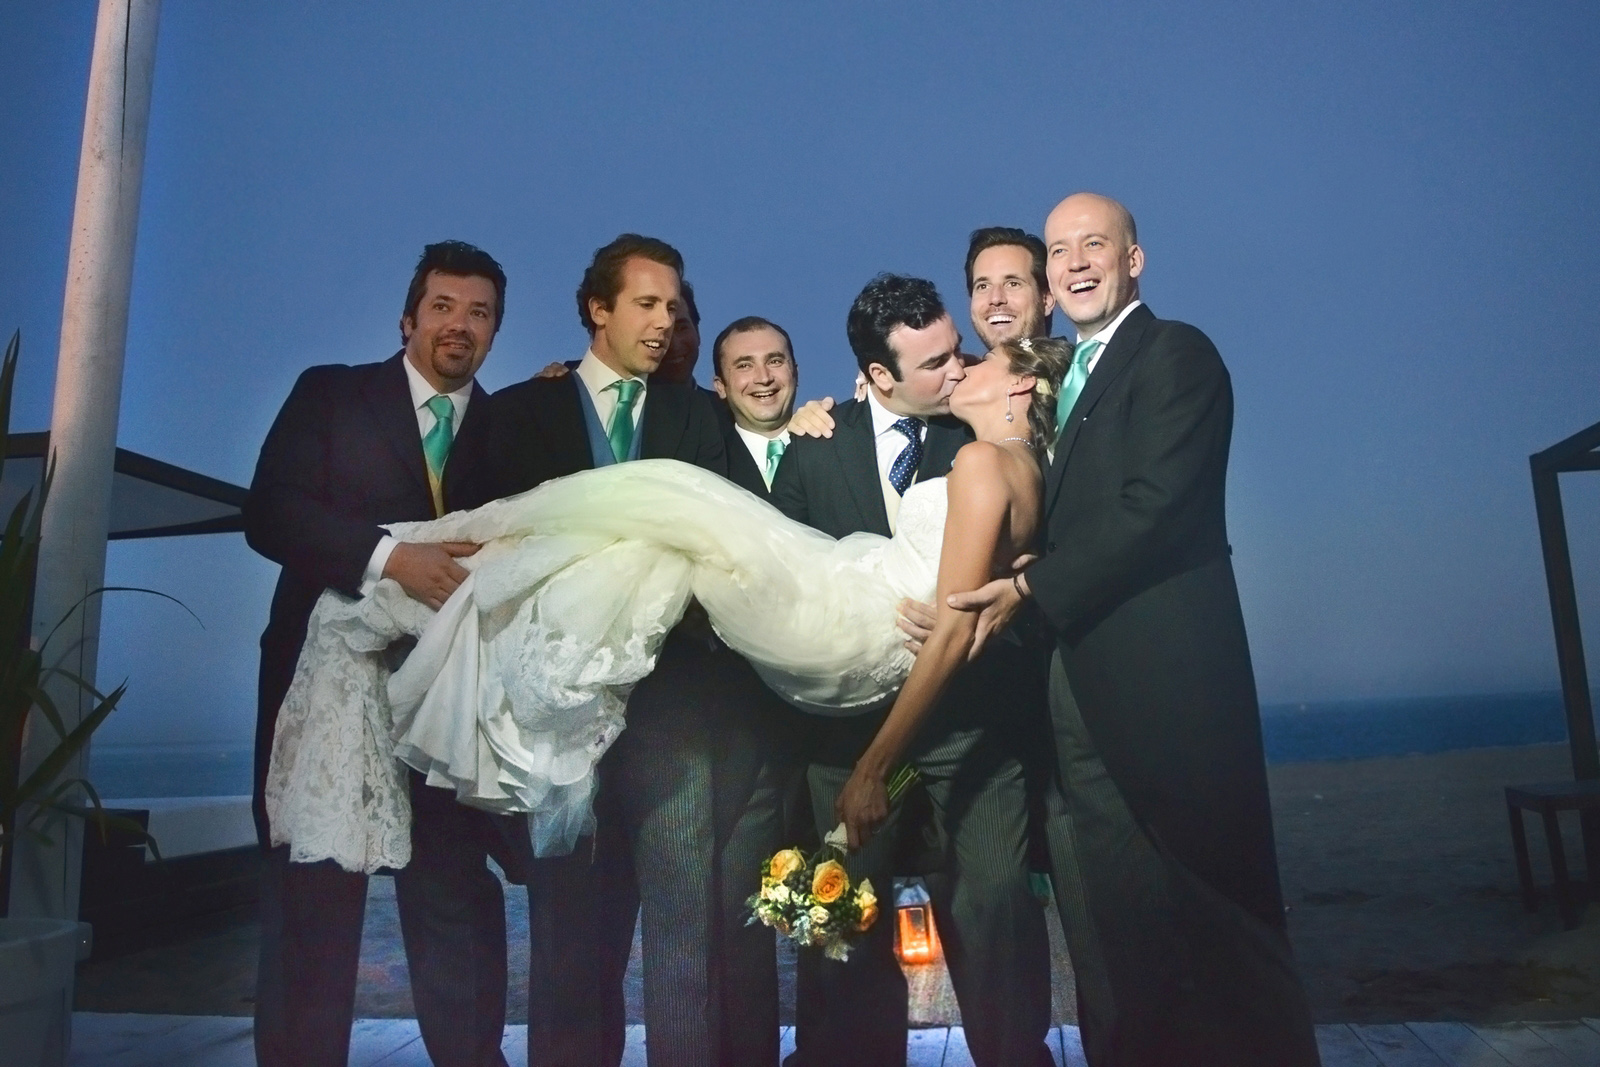 funny photos wedding at marbella